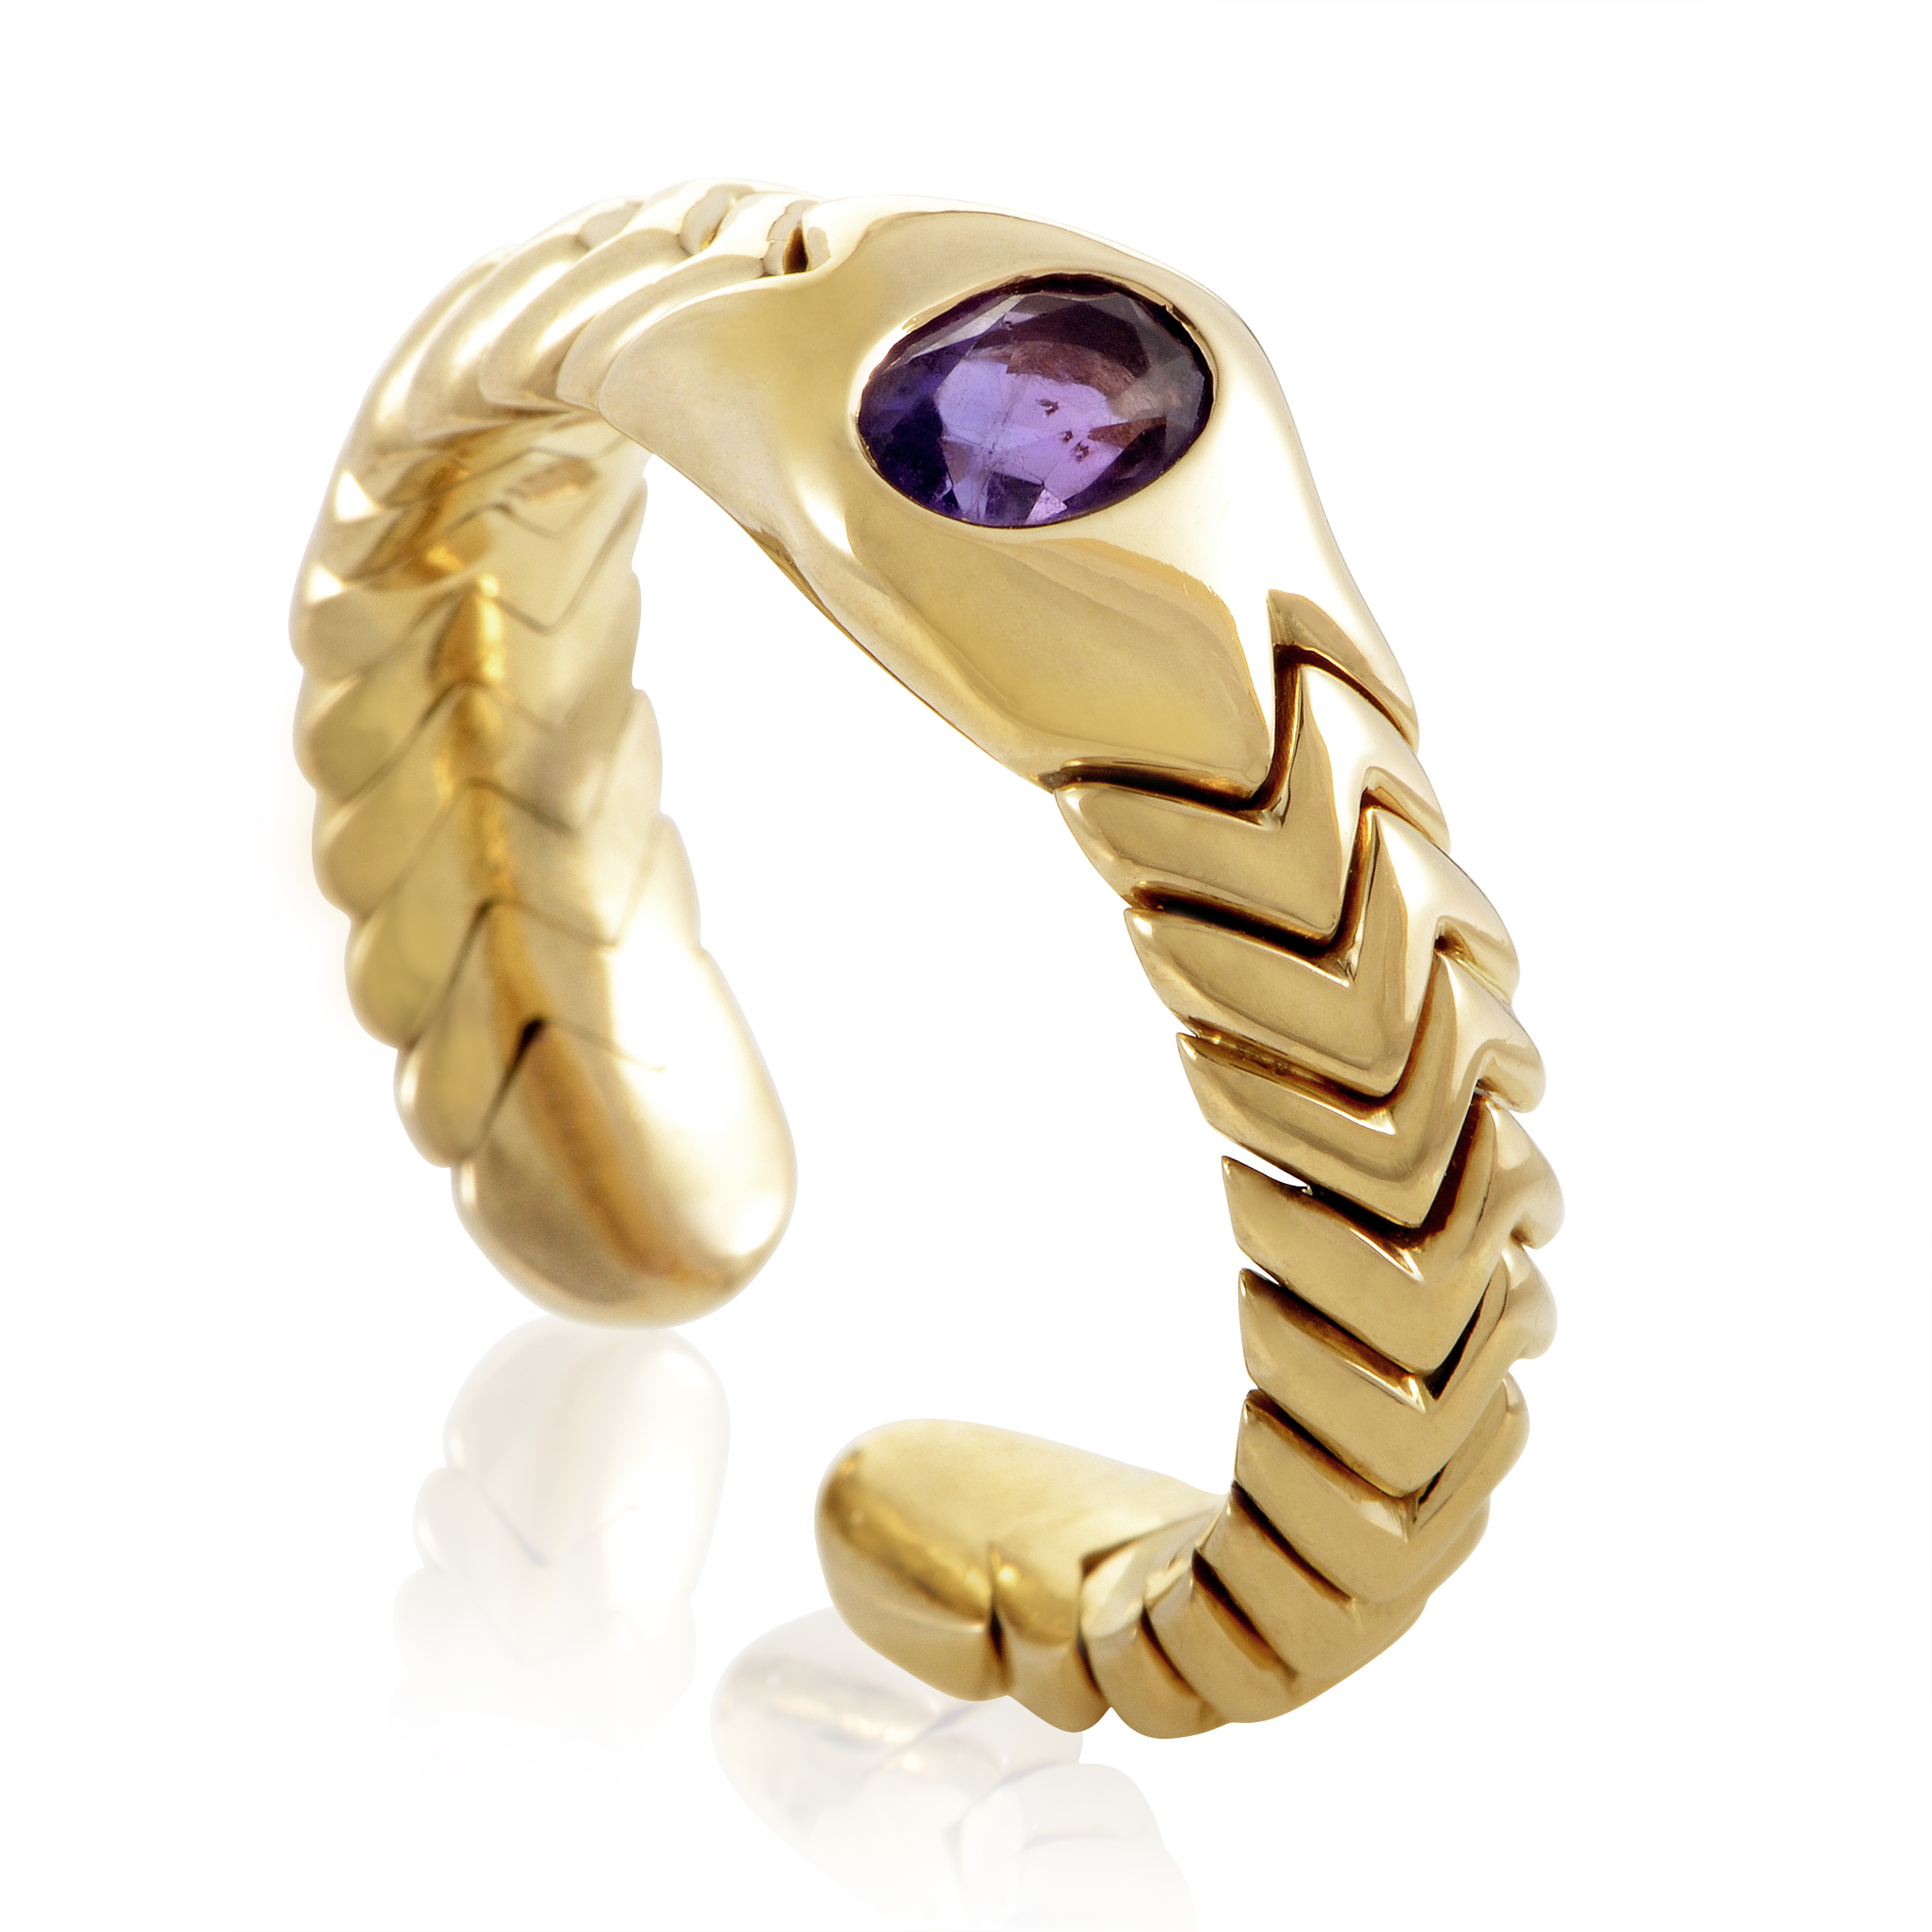 Bvlgari Spiga Women's 18K Yellow Gold Amethyst Band Ring